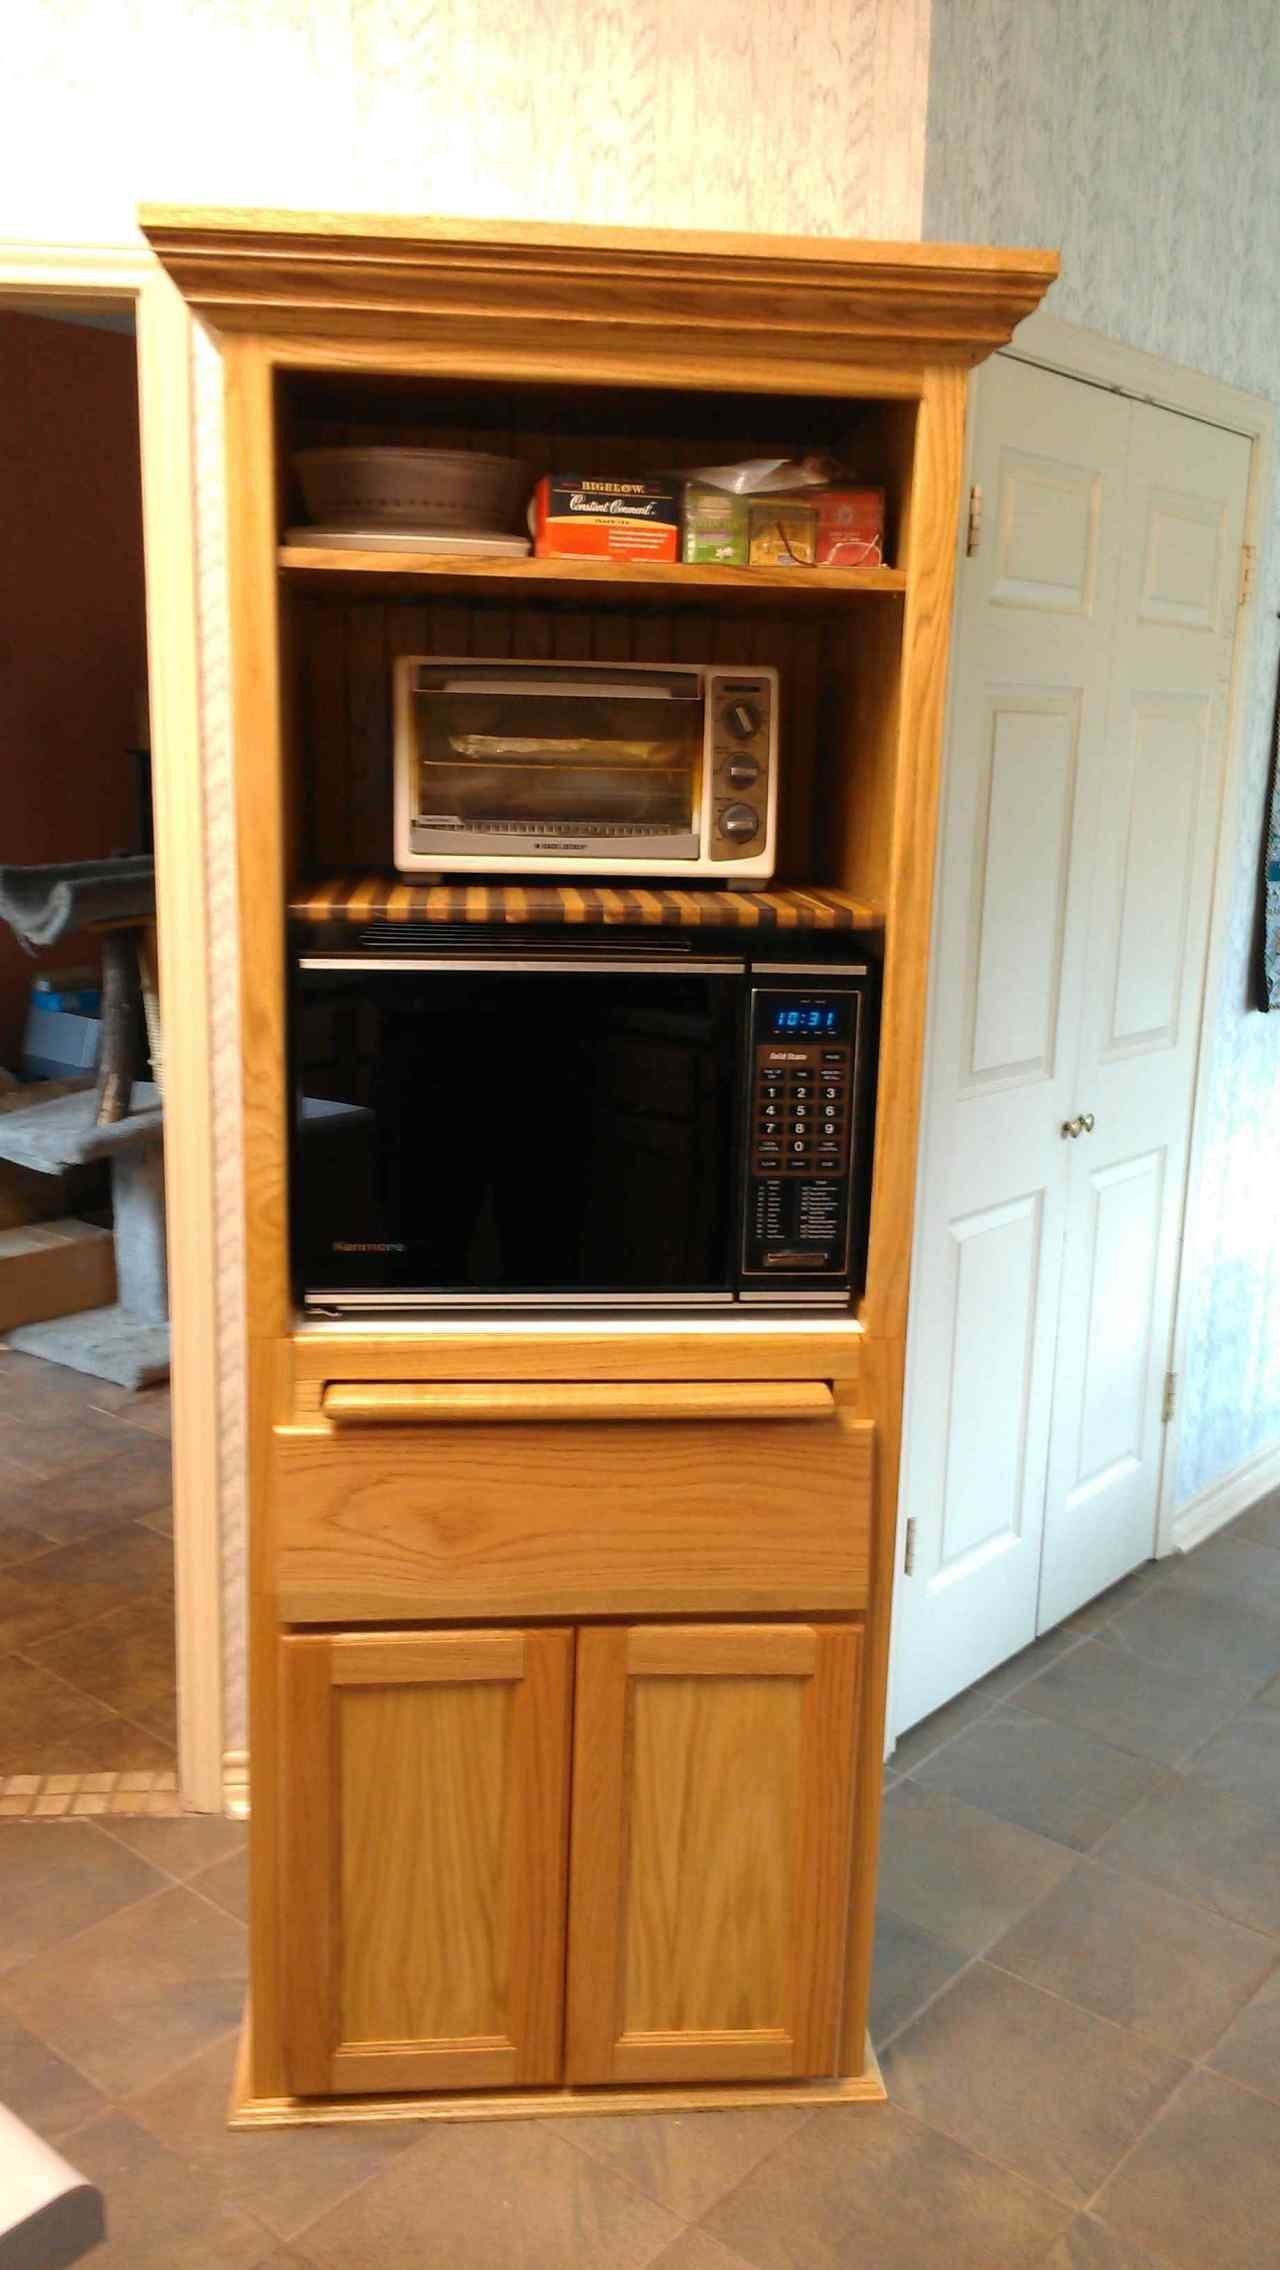 Built In Microwave Cabinet Diy Awesome Diy Microwave Storage Diy Ideas Built In Microwave Cabinet Diy Cabinets Built In Microwave